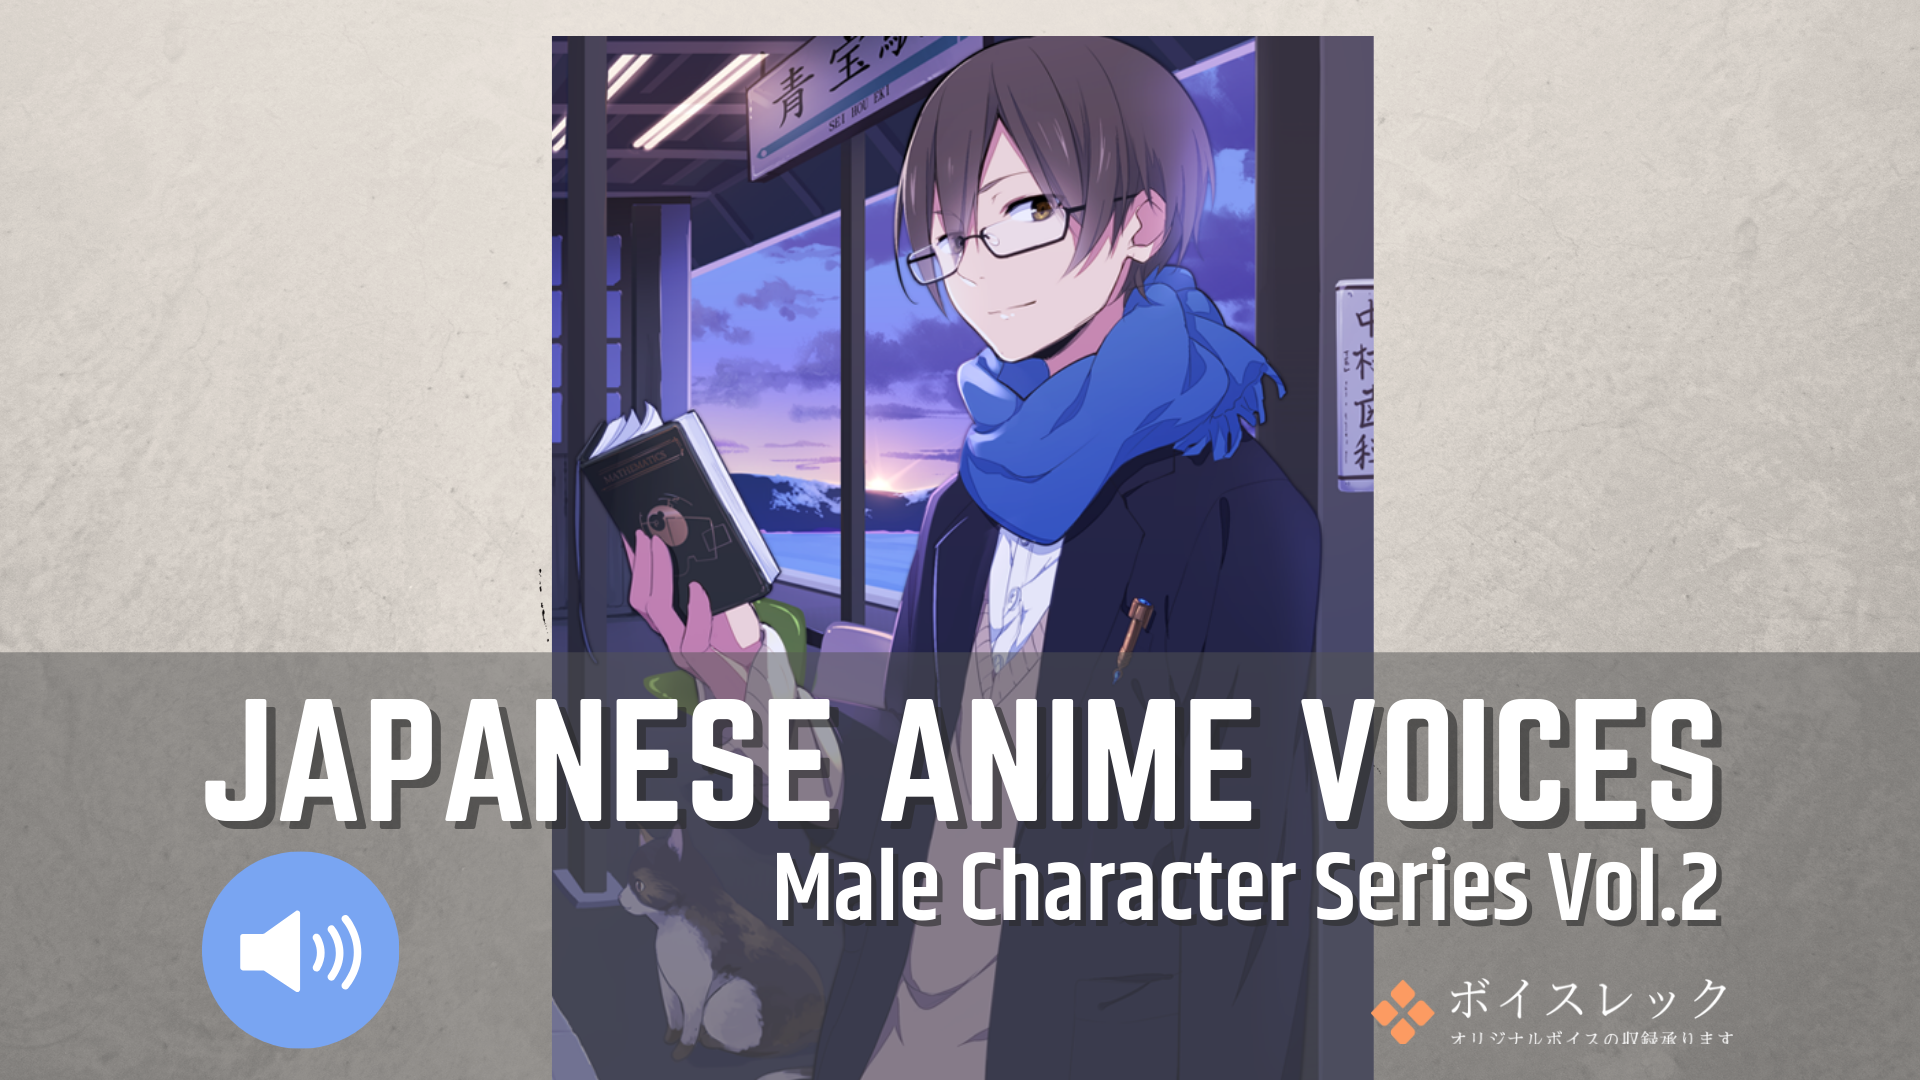 Japanese Anime Voices Male Character Series Vol 2 by